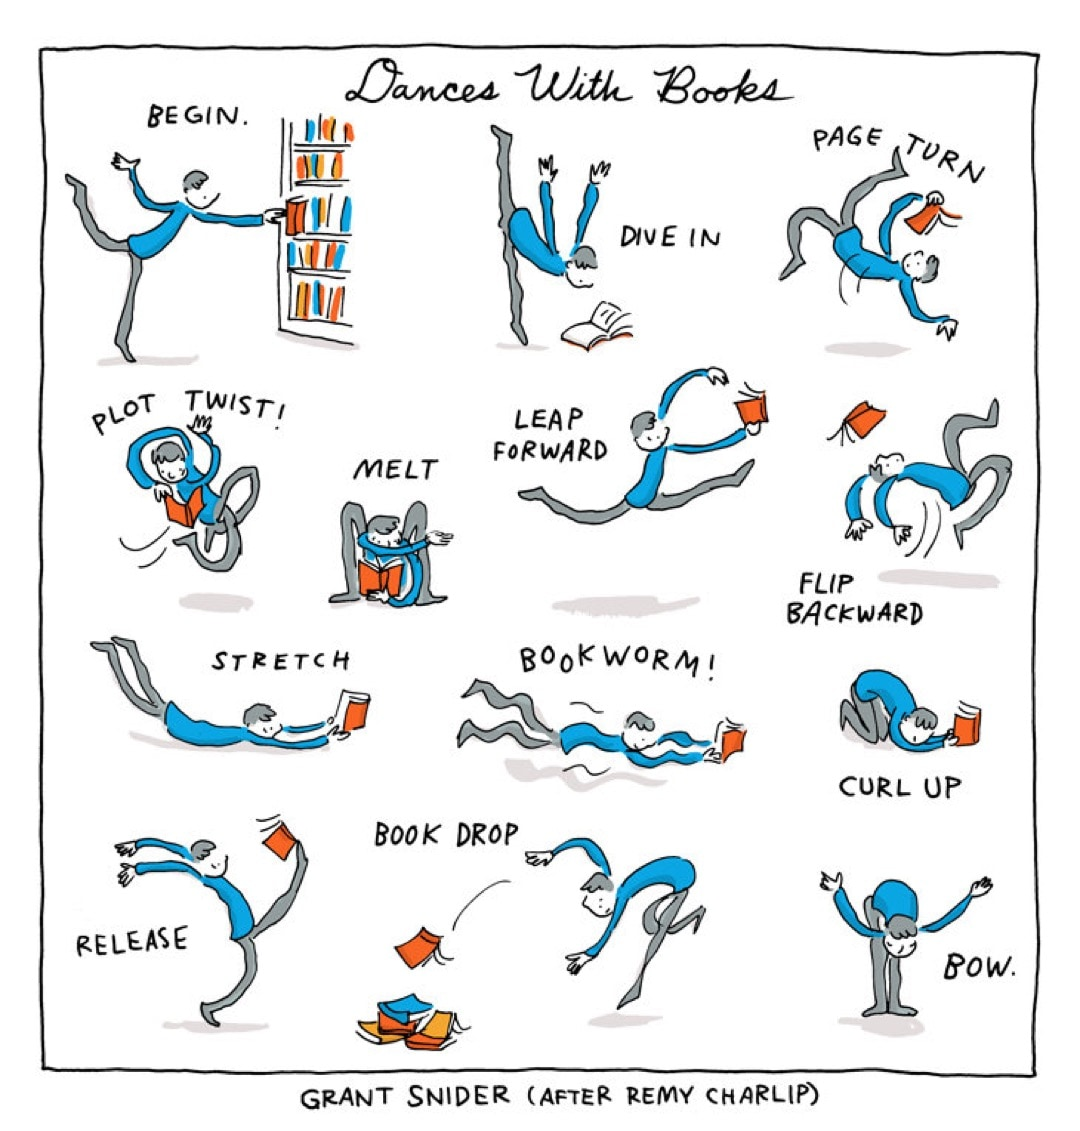 Dances with Books by Grant Snider - best cartoons